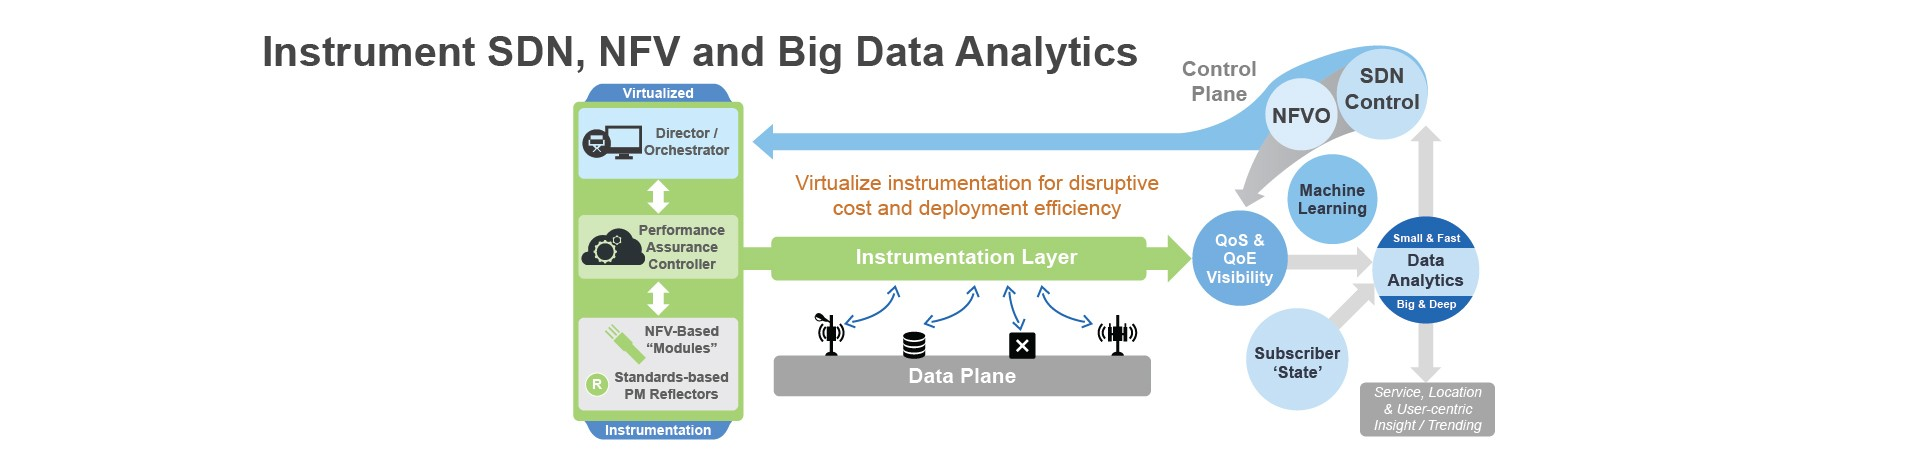 Software Defined Network, big data in SDN, IoT in SDN